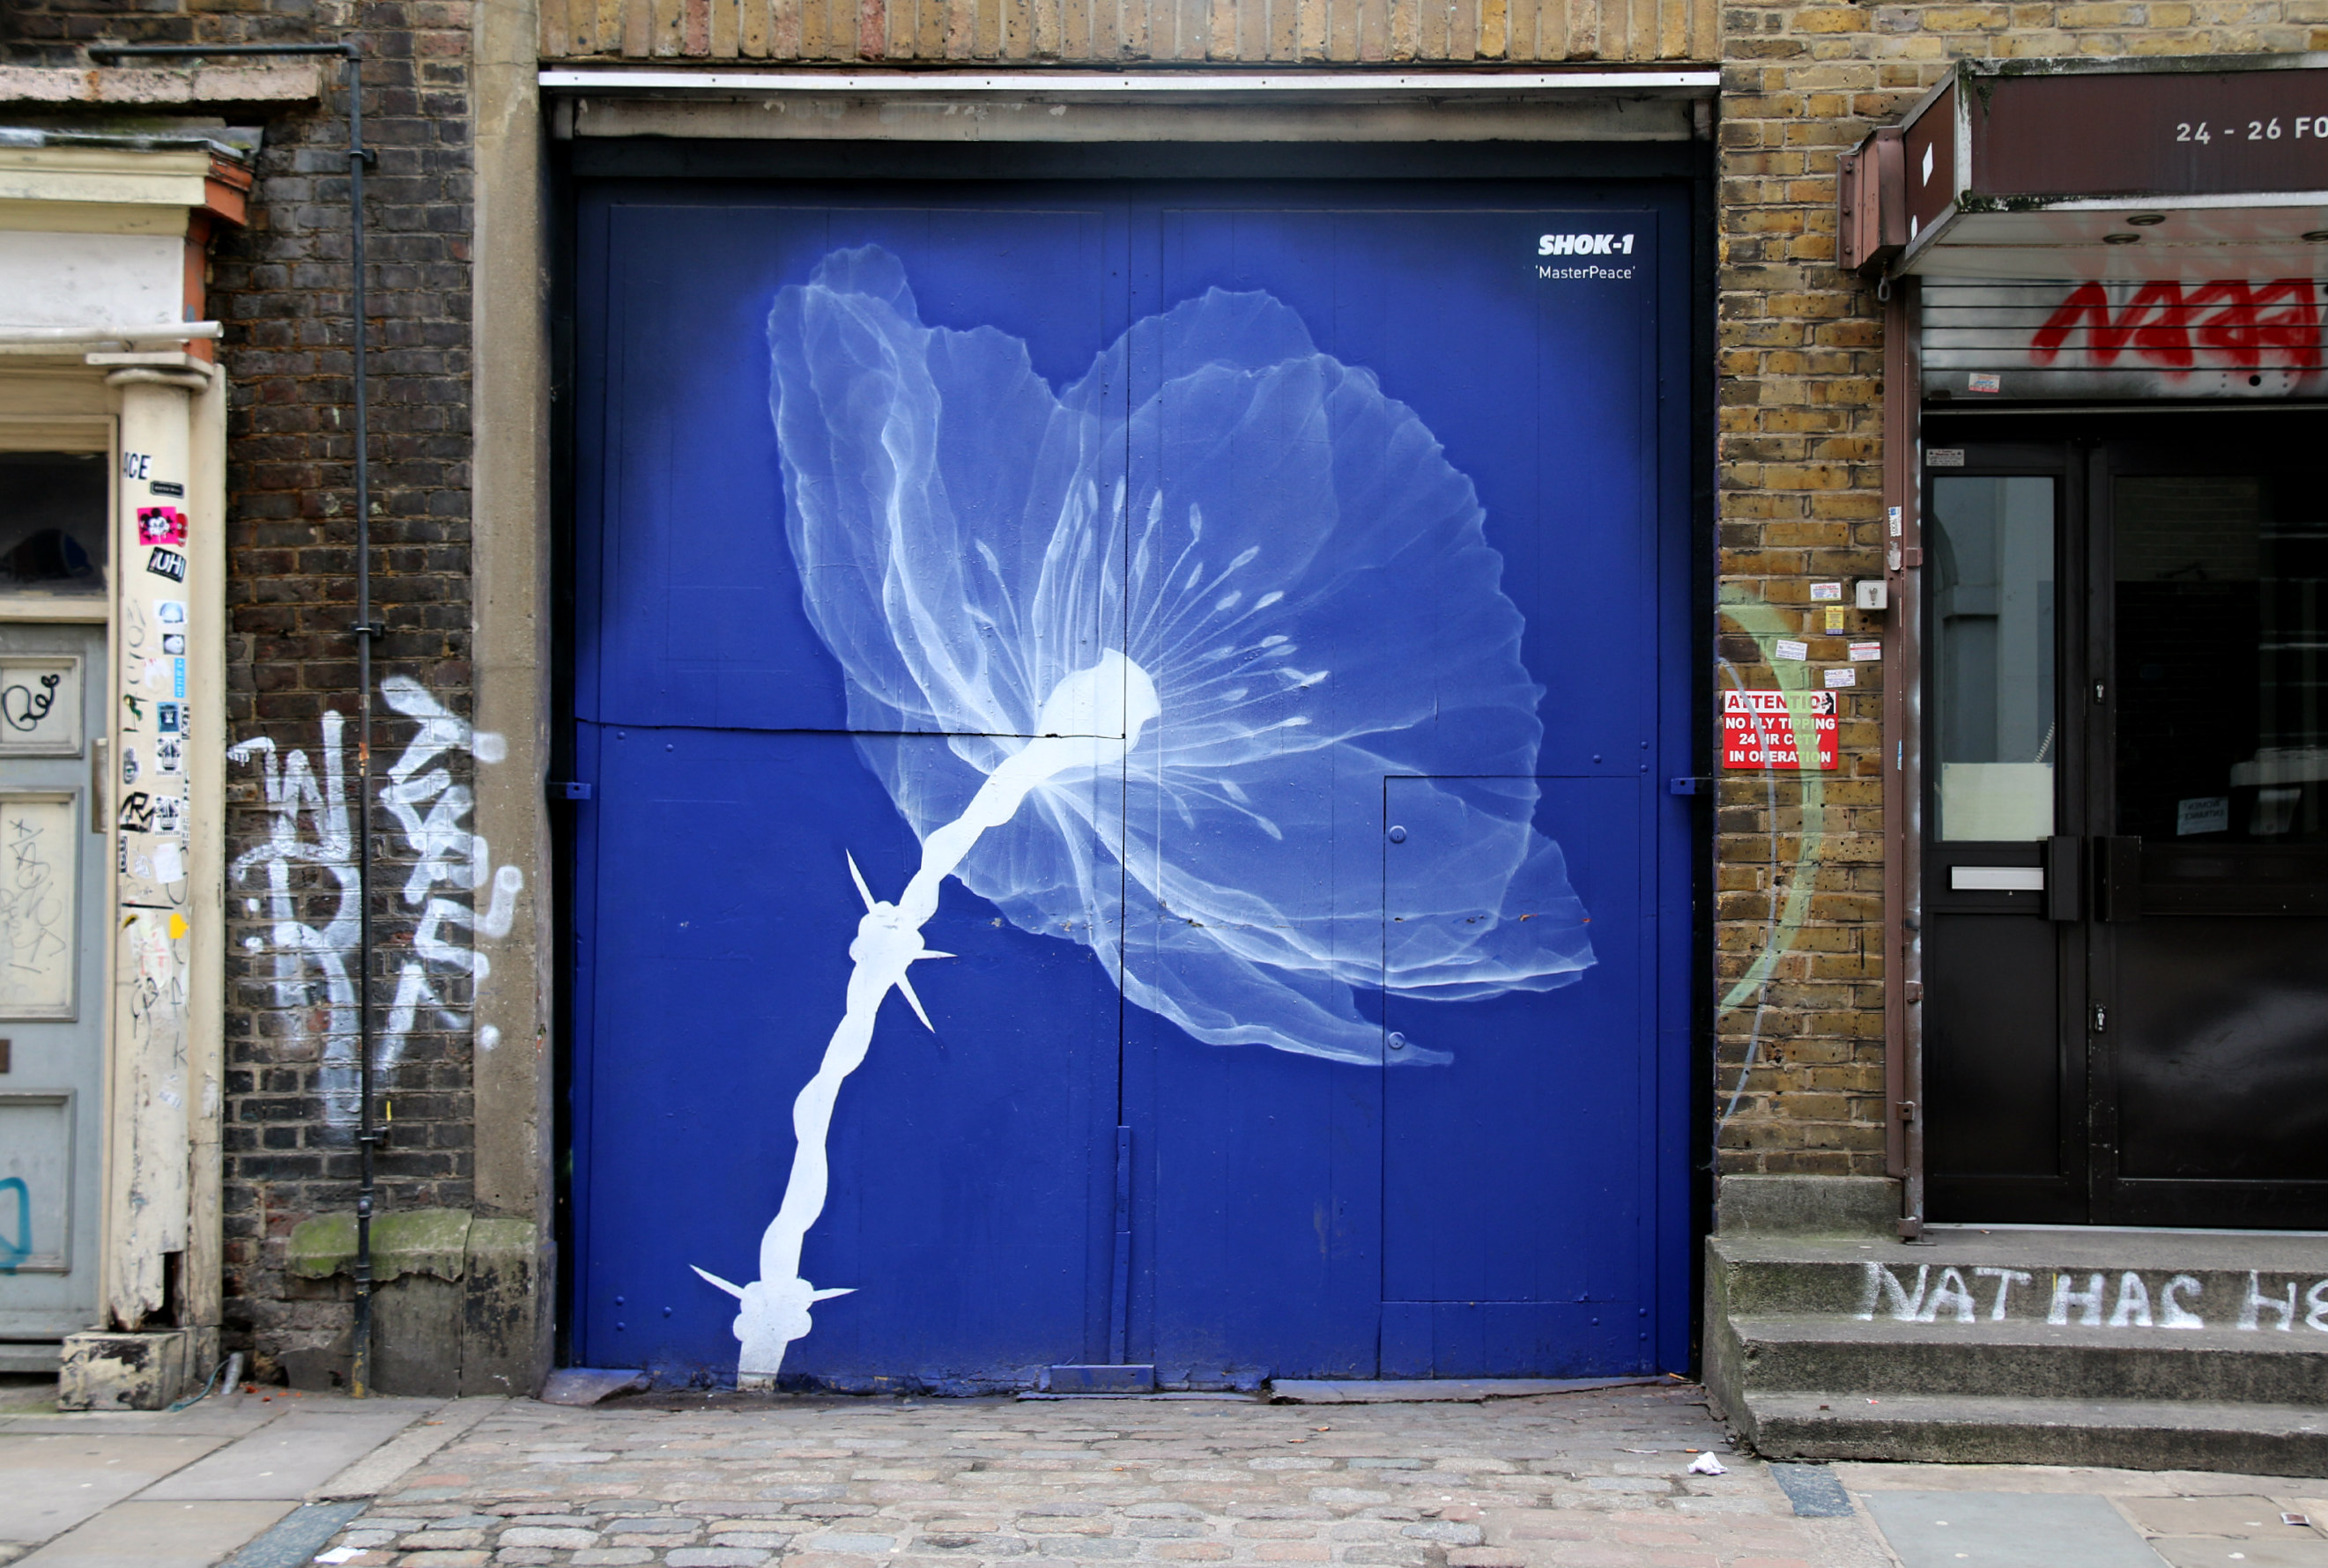 Fournier street 24-26 Shoreditch street art mural X ray flower by Shok-1